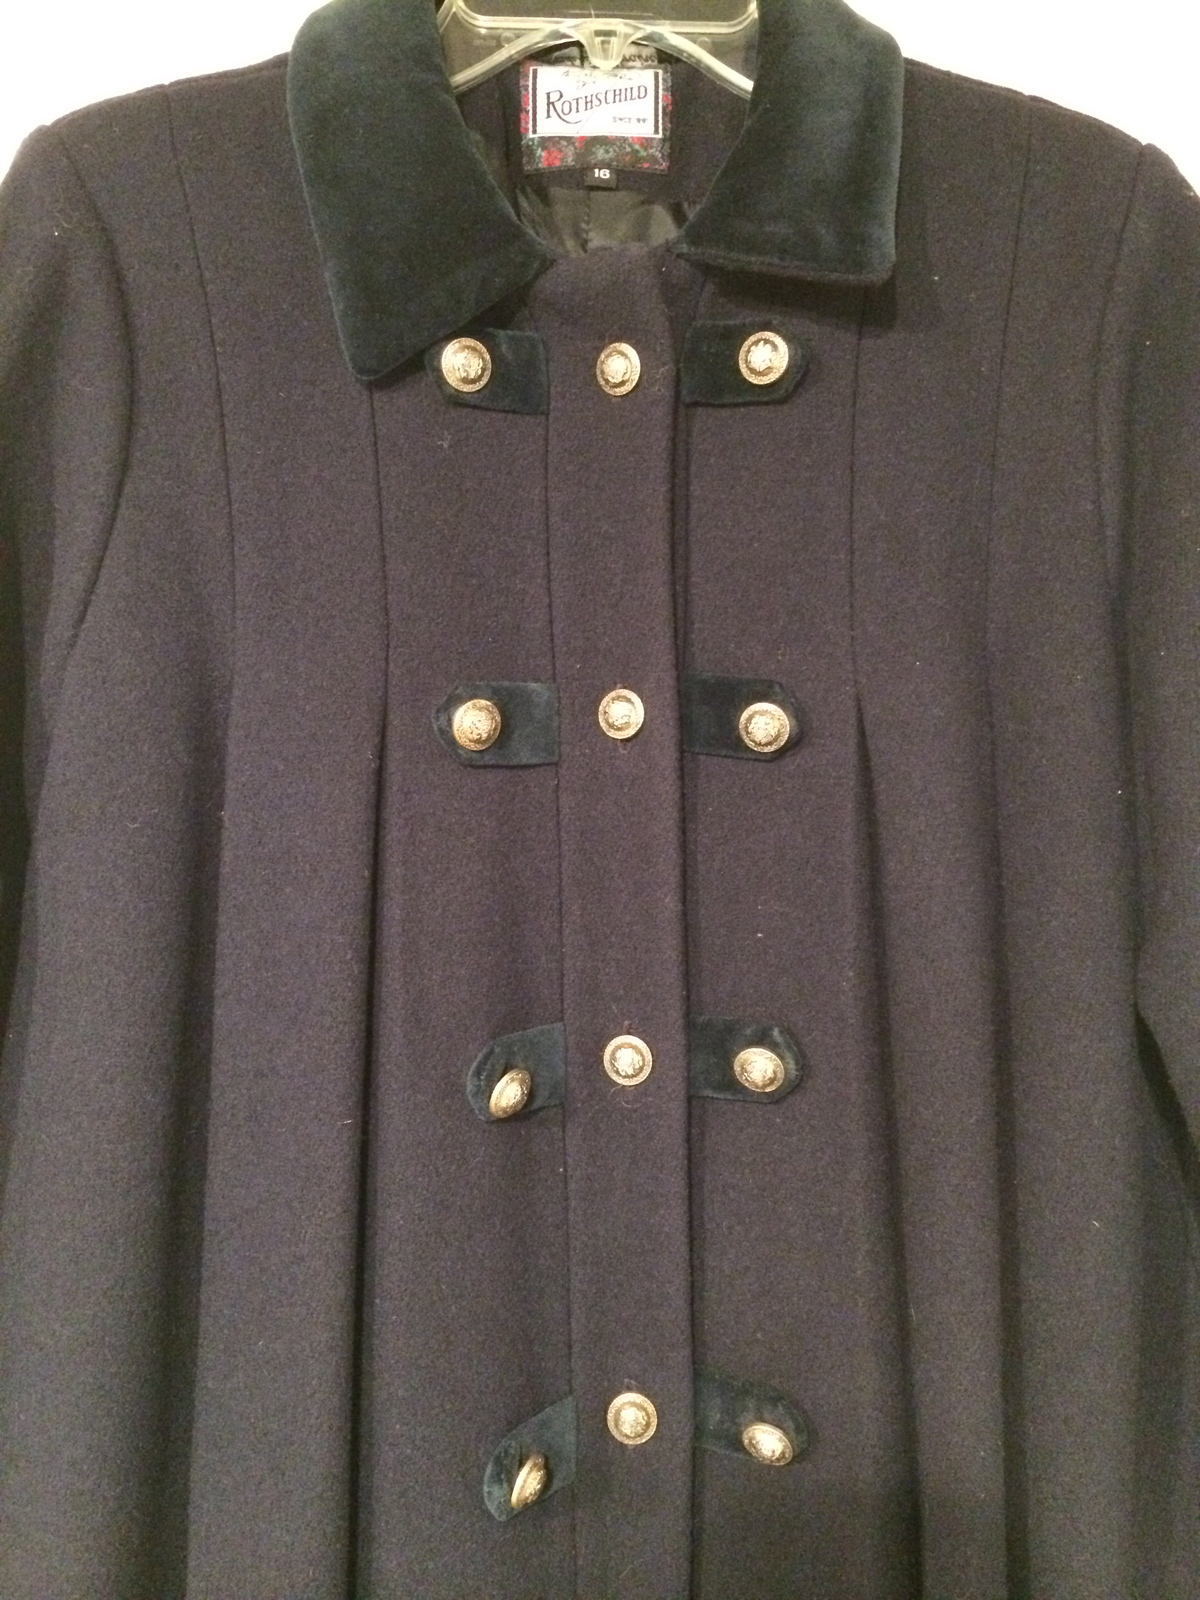 Tailored by Rothschild Authentic Vintage 100% wool Navy Blue Gold Pleat Military